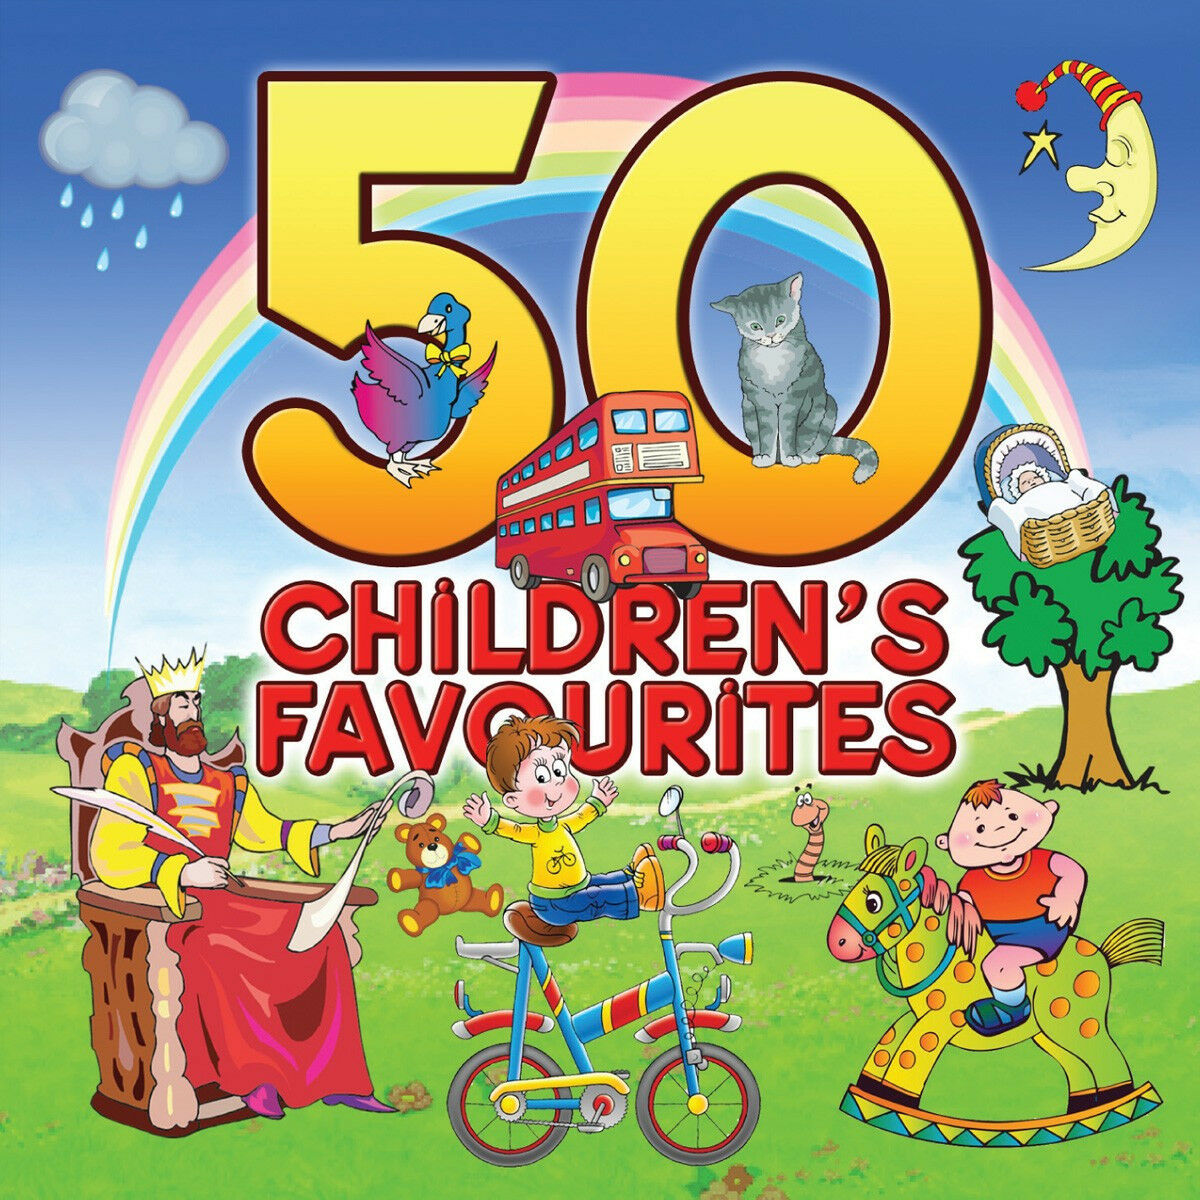 50 Children S Favorites Childrens Songs Best Kids Music Nursery Rhymes New 2 Cd 1 Of See More